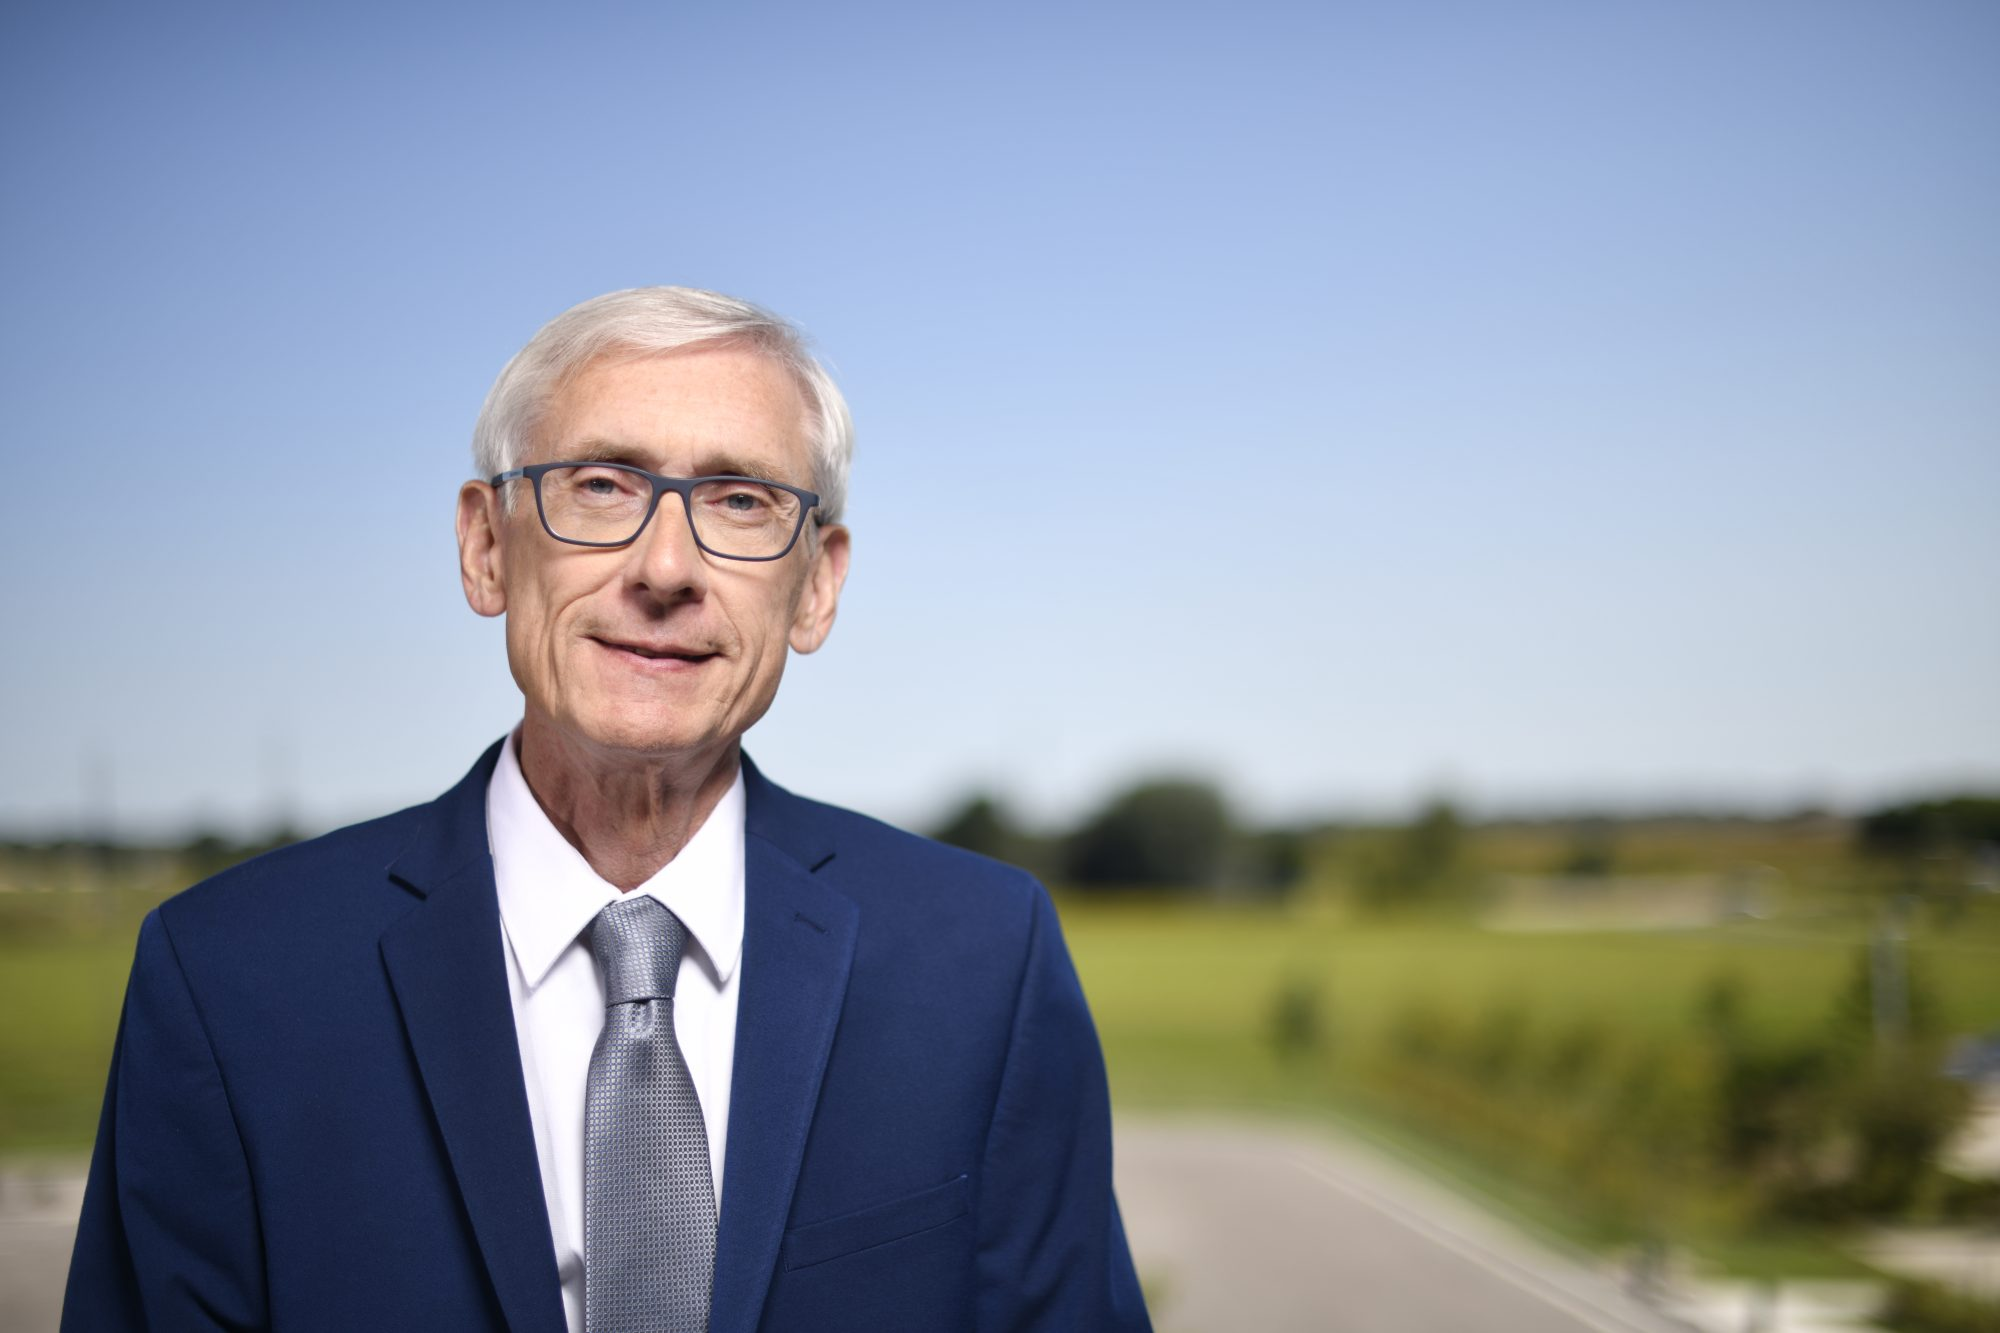 Gov. Evers, WEDC, PSC Announce $100,000 Grant to Assist Drone-based Broadband to Serve Students in Eagle River